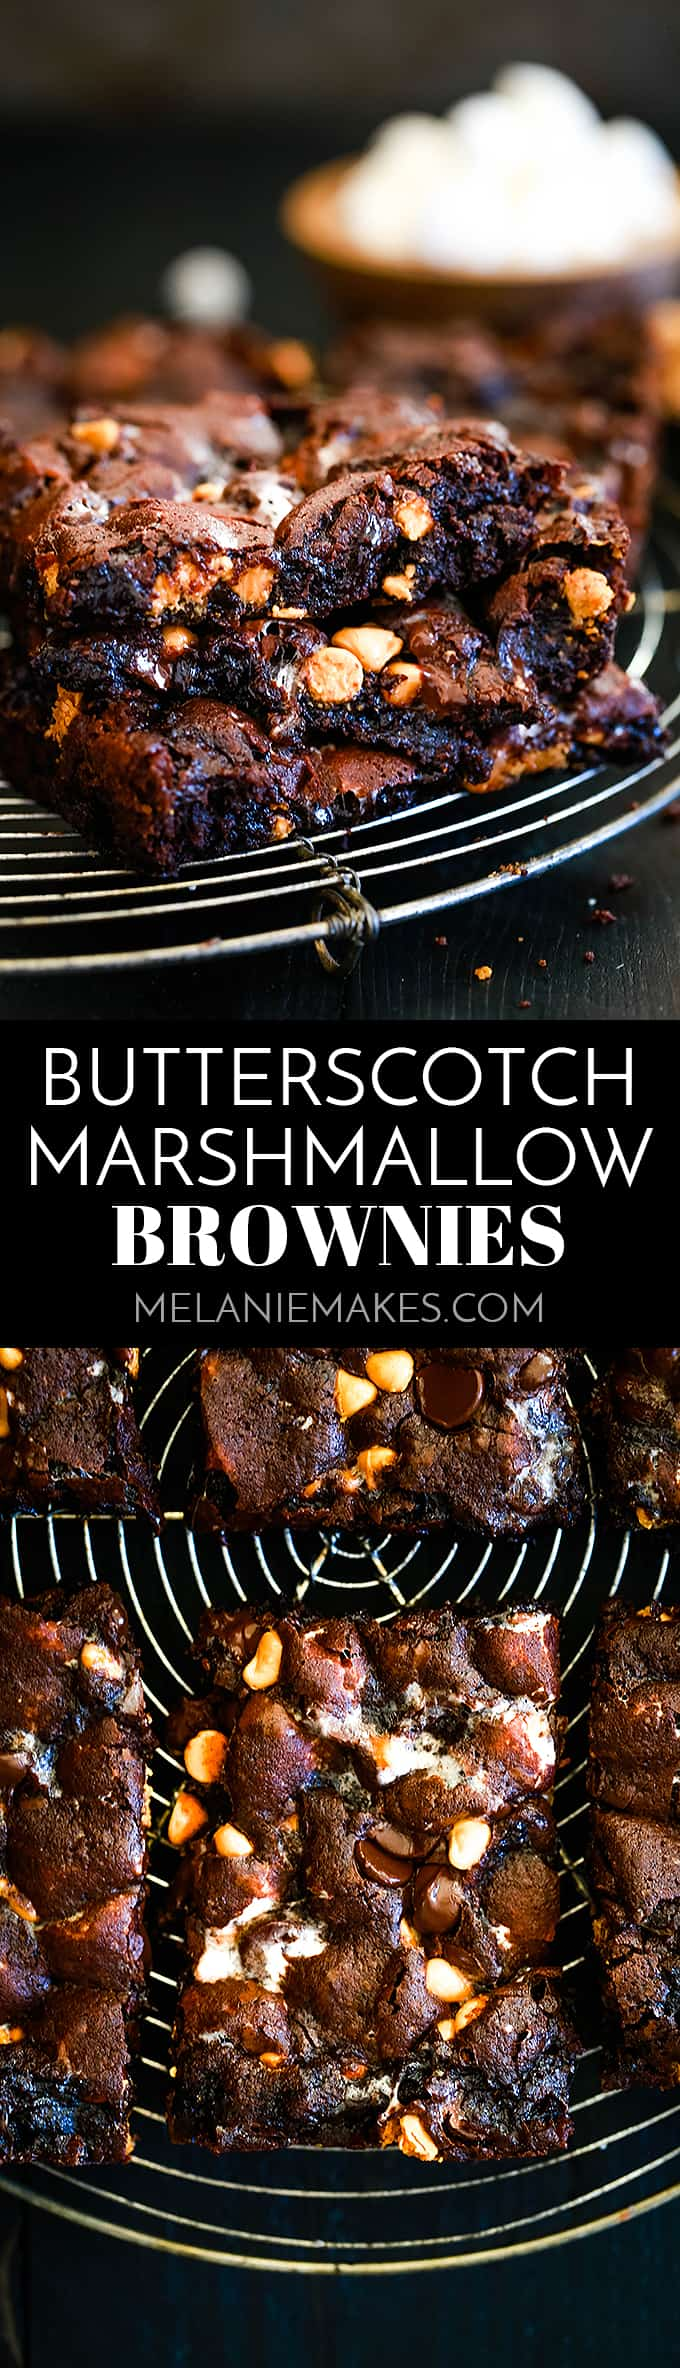 These Butterscotch Marshmallow Brownies have an indulgent brownie base studded with marshmallows and showered with dark chocolate and butterscotch chips. #chocolate #brownies #butterscotch #marshmallow #desserts #easyrecipe